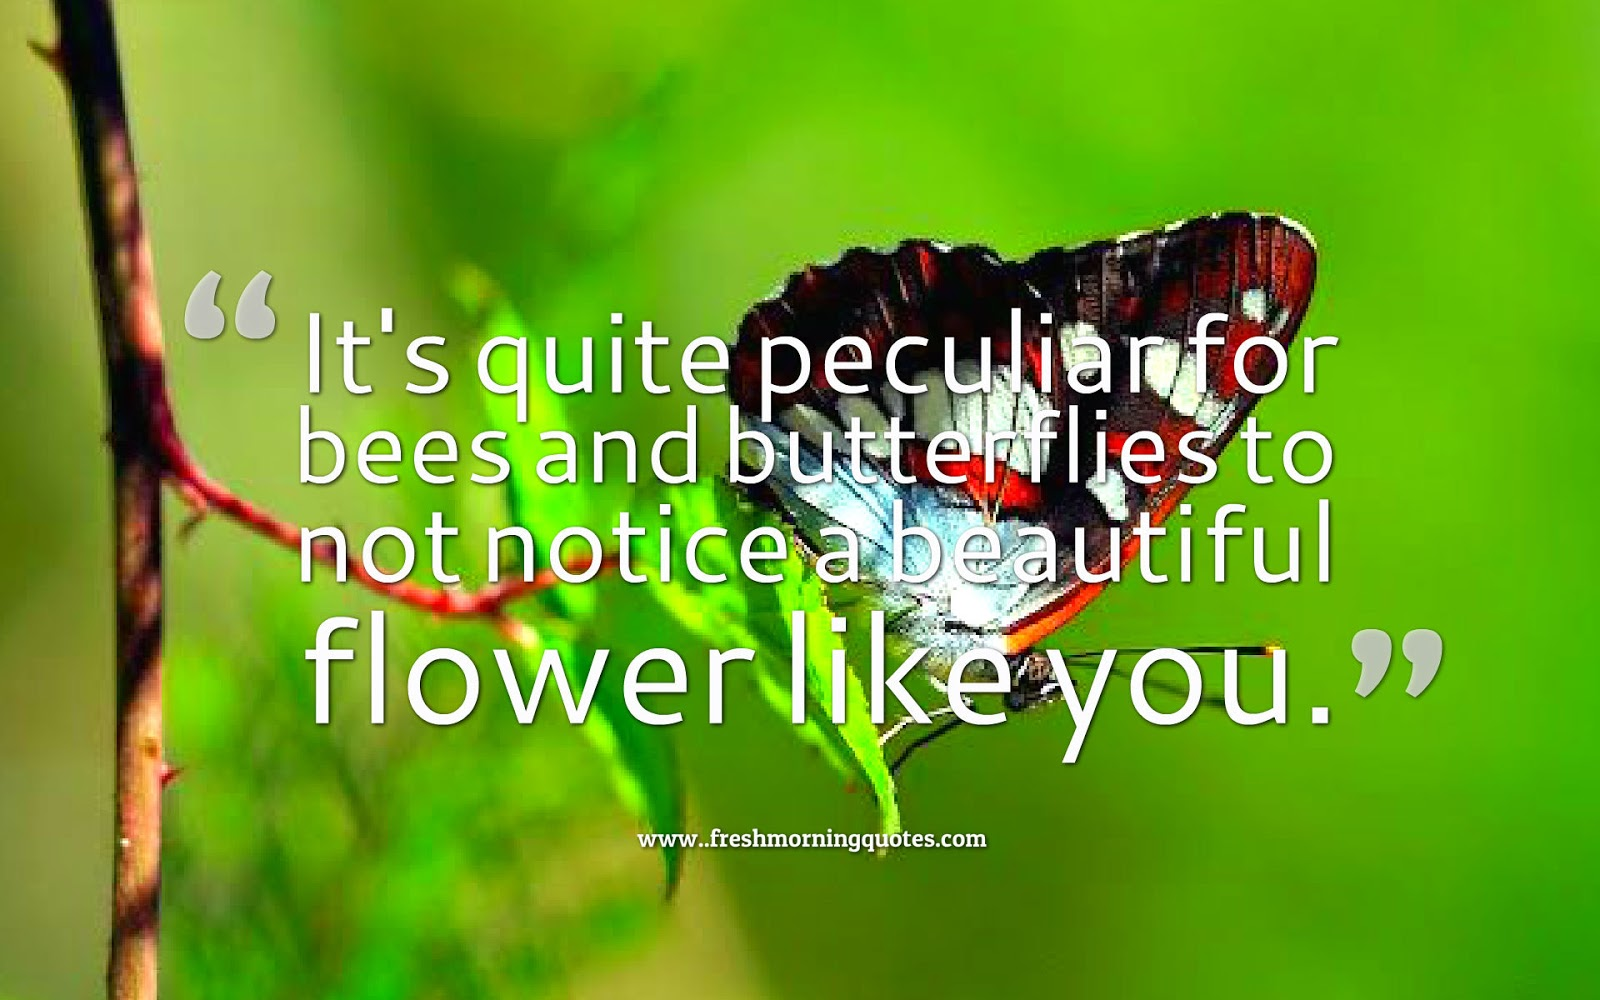 You Are So Beautiful Quotes For Her Freshmorningquotes